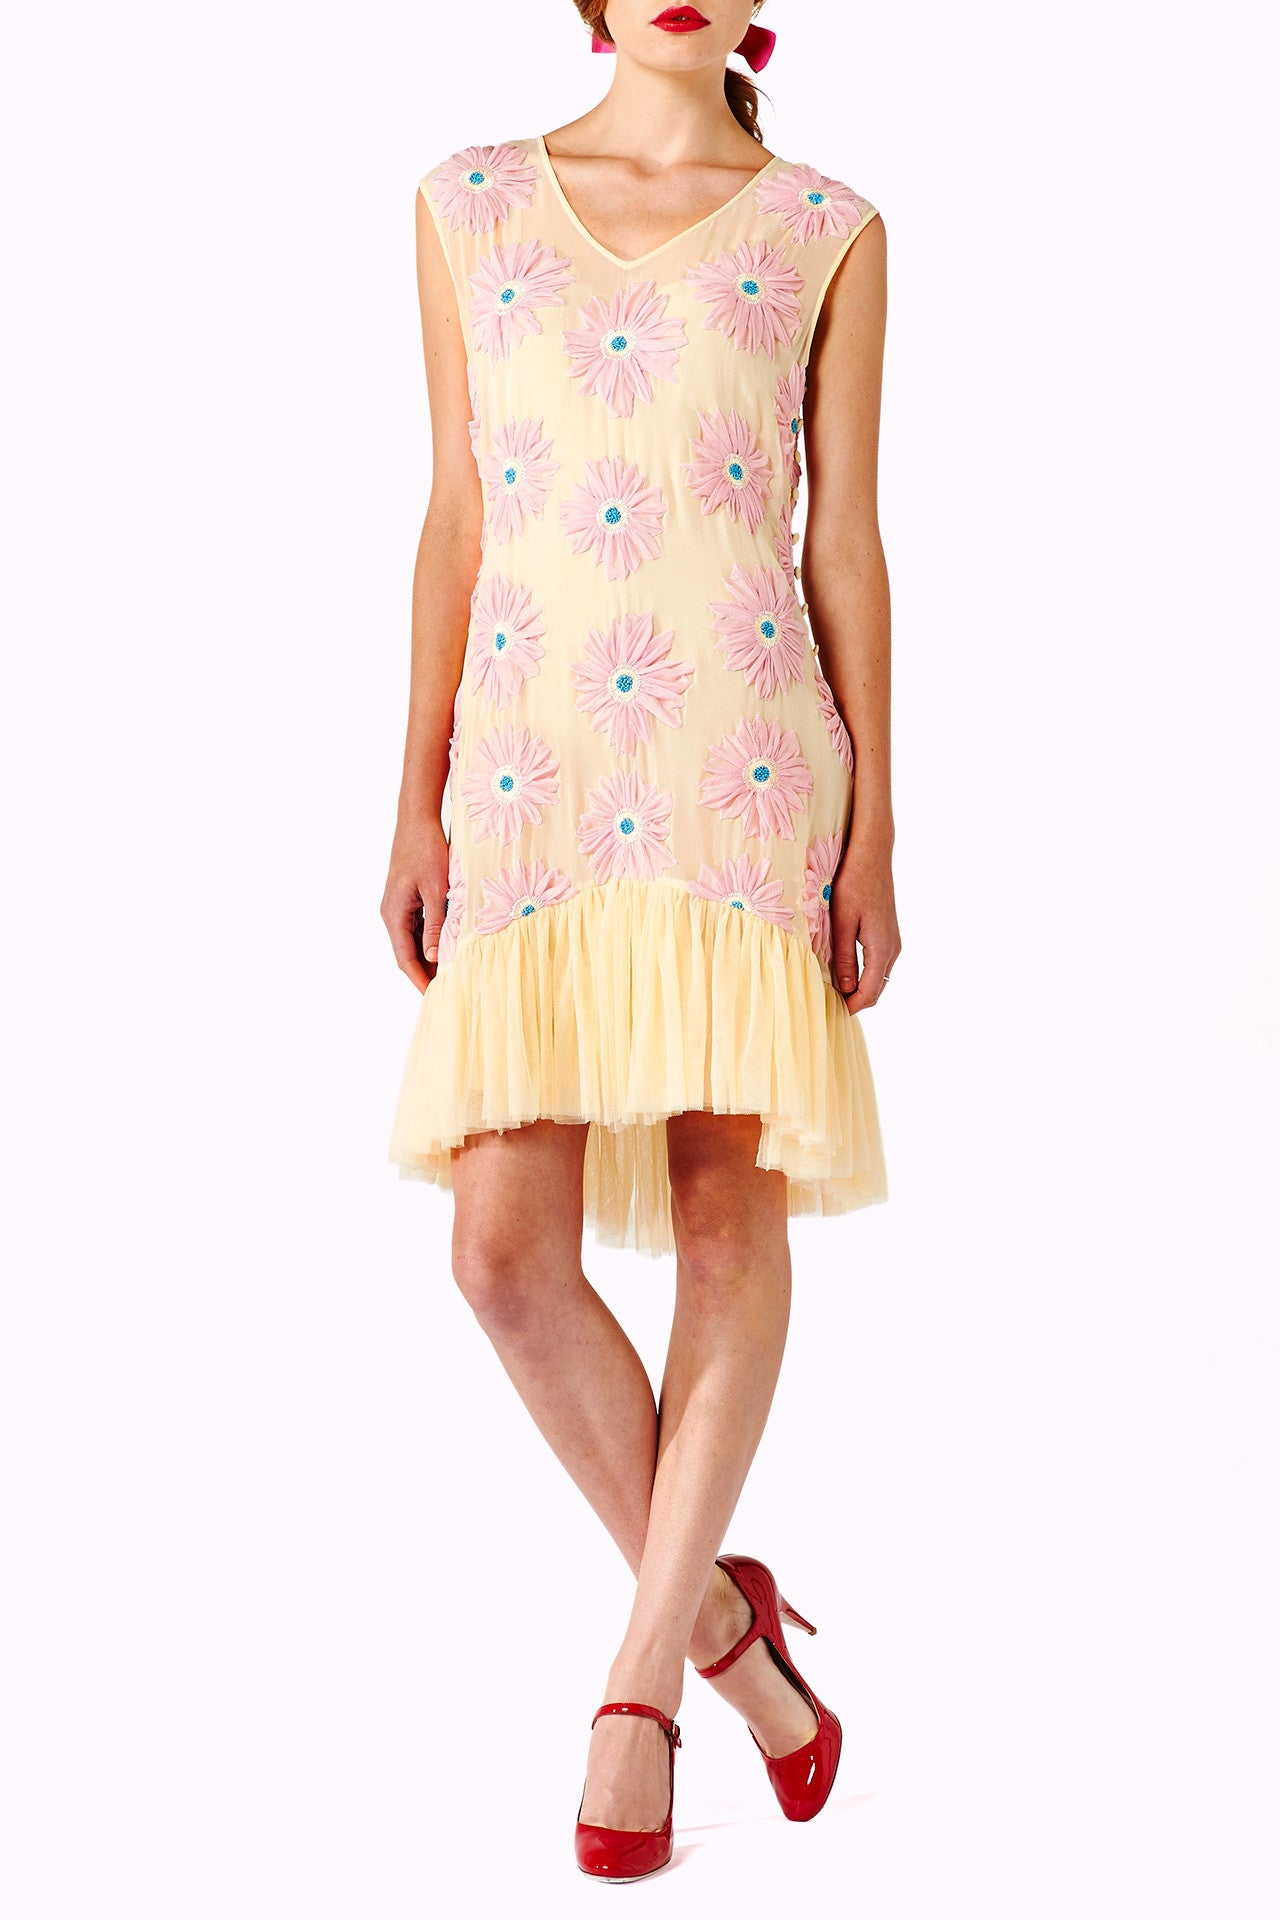 I'm A Little Daisy! I'm Never Ever Lazy Dress